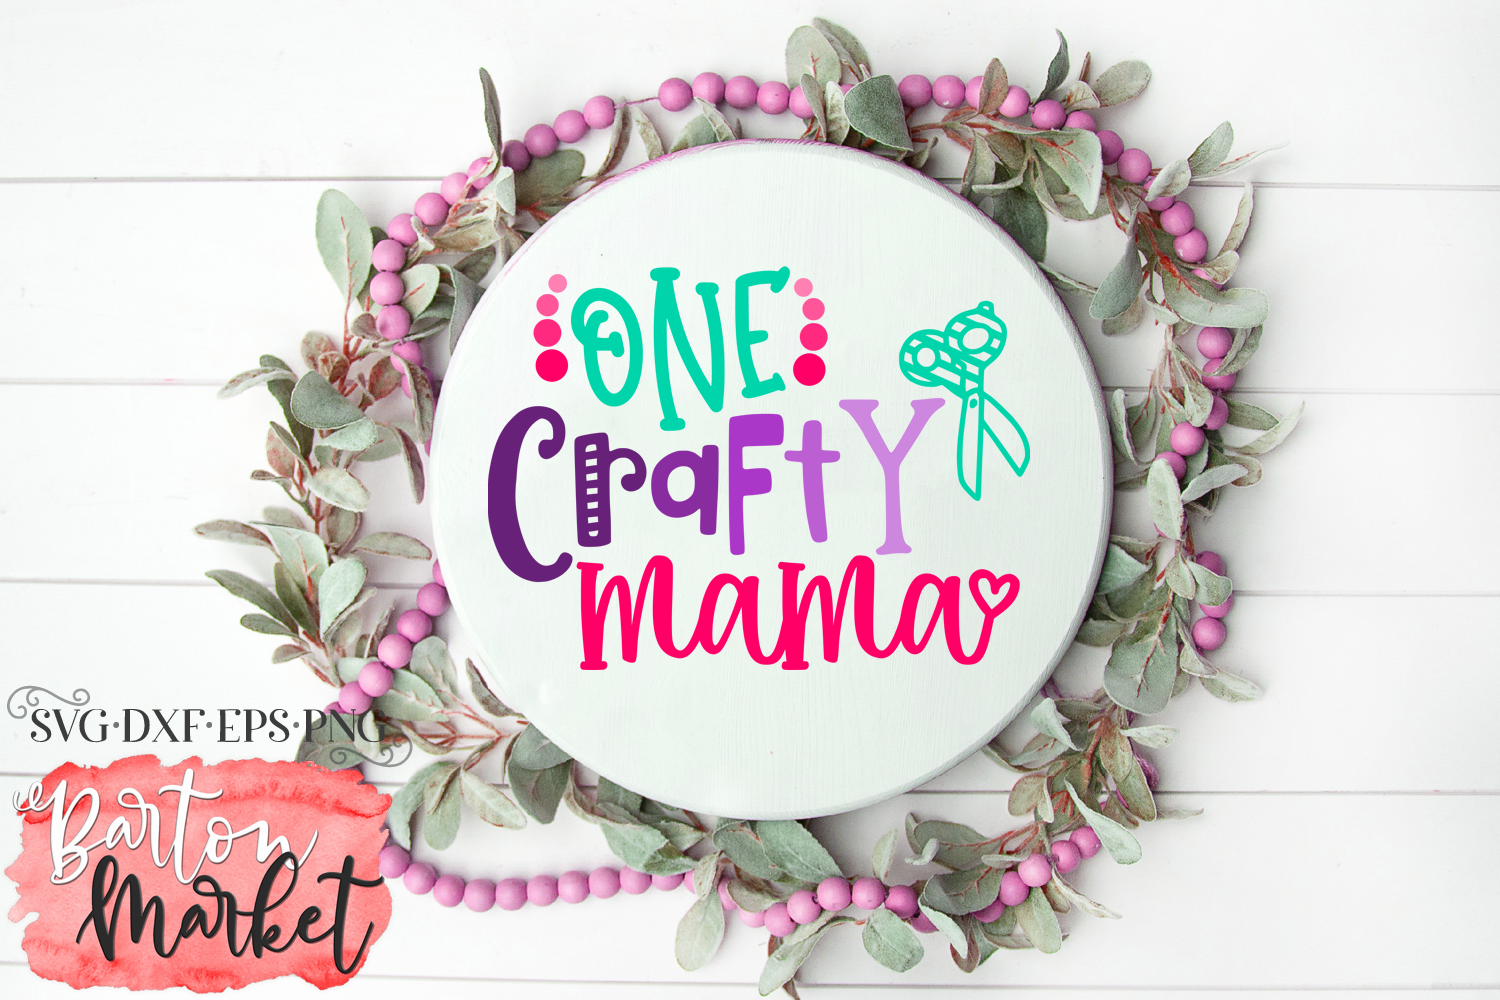 One Crafty Mama SVG DXF EPS PNG example image 1